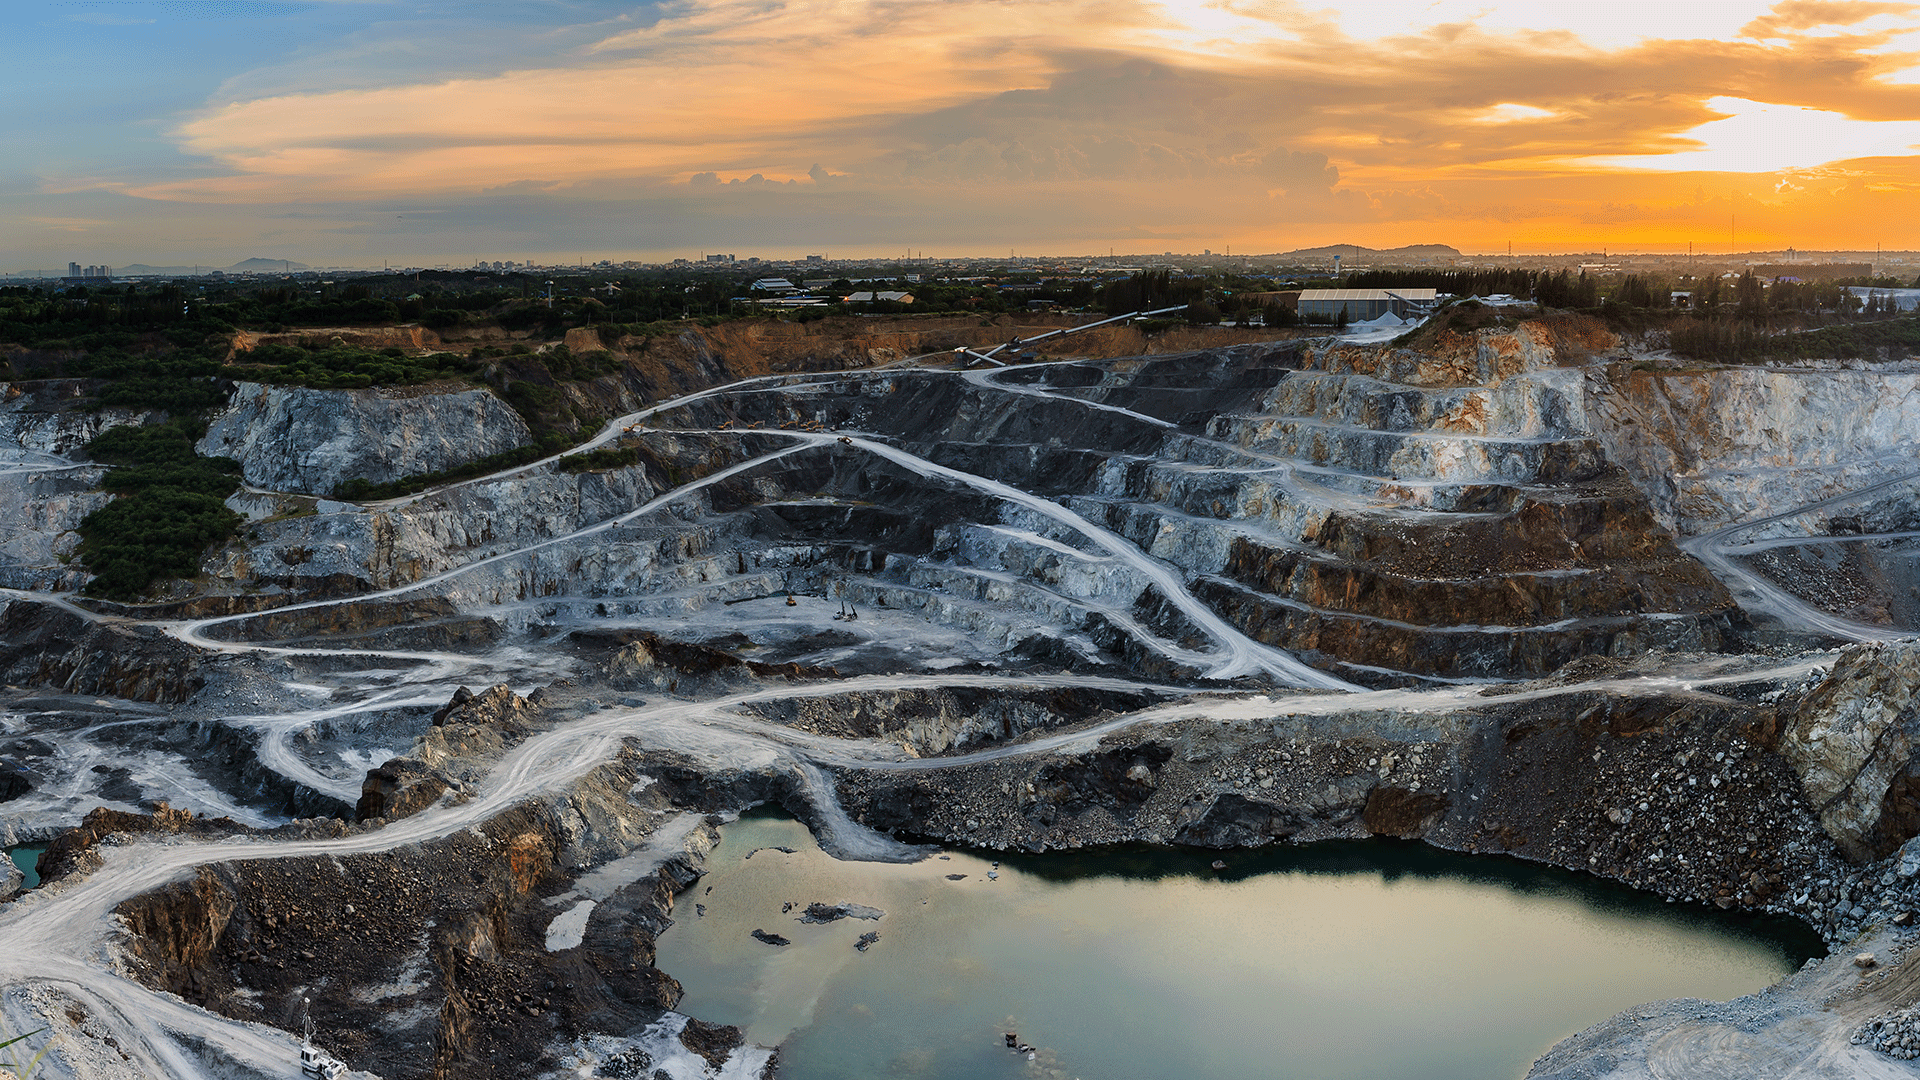 Sustainability in mining and materials: Antitrust authorities step up